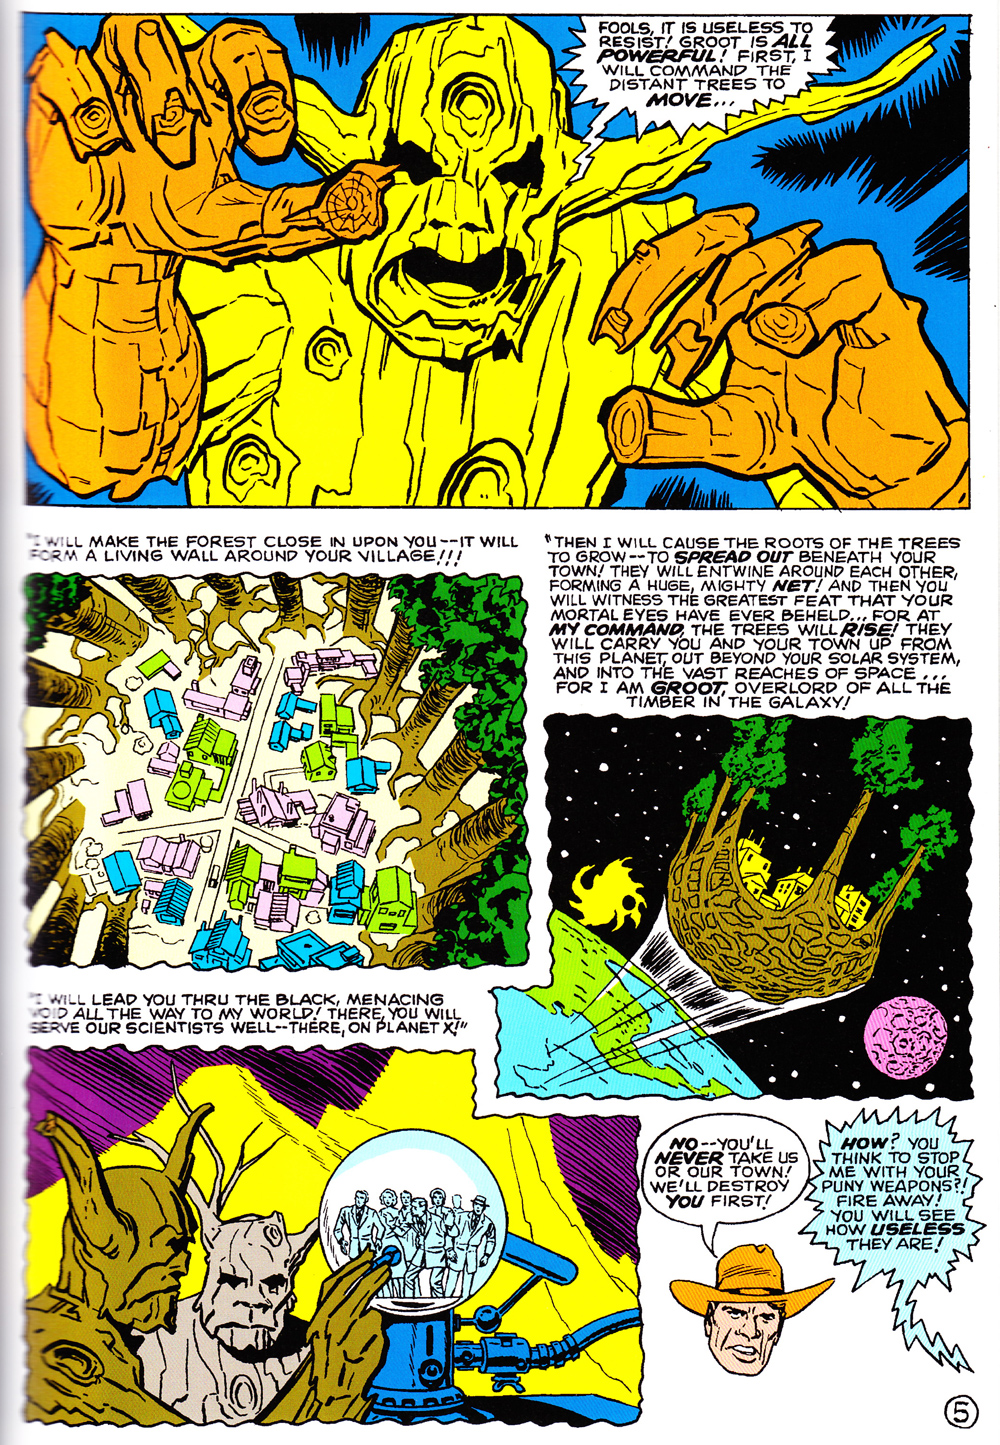 Click to enlarge the page and bask in the glory of Groot's ridiculous speech!